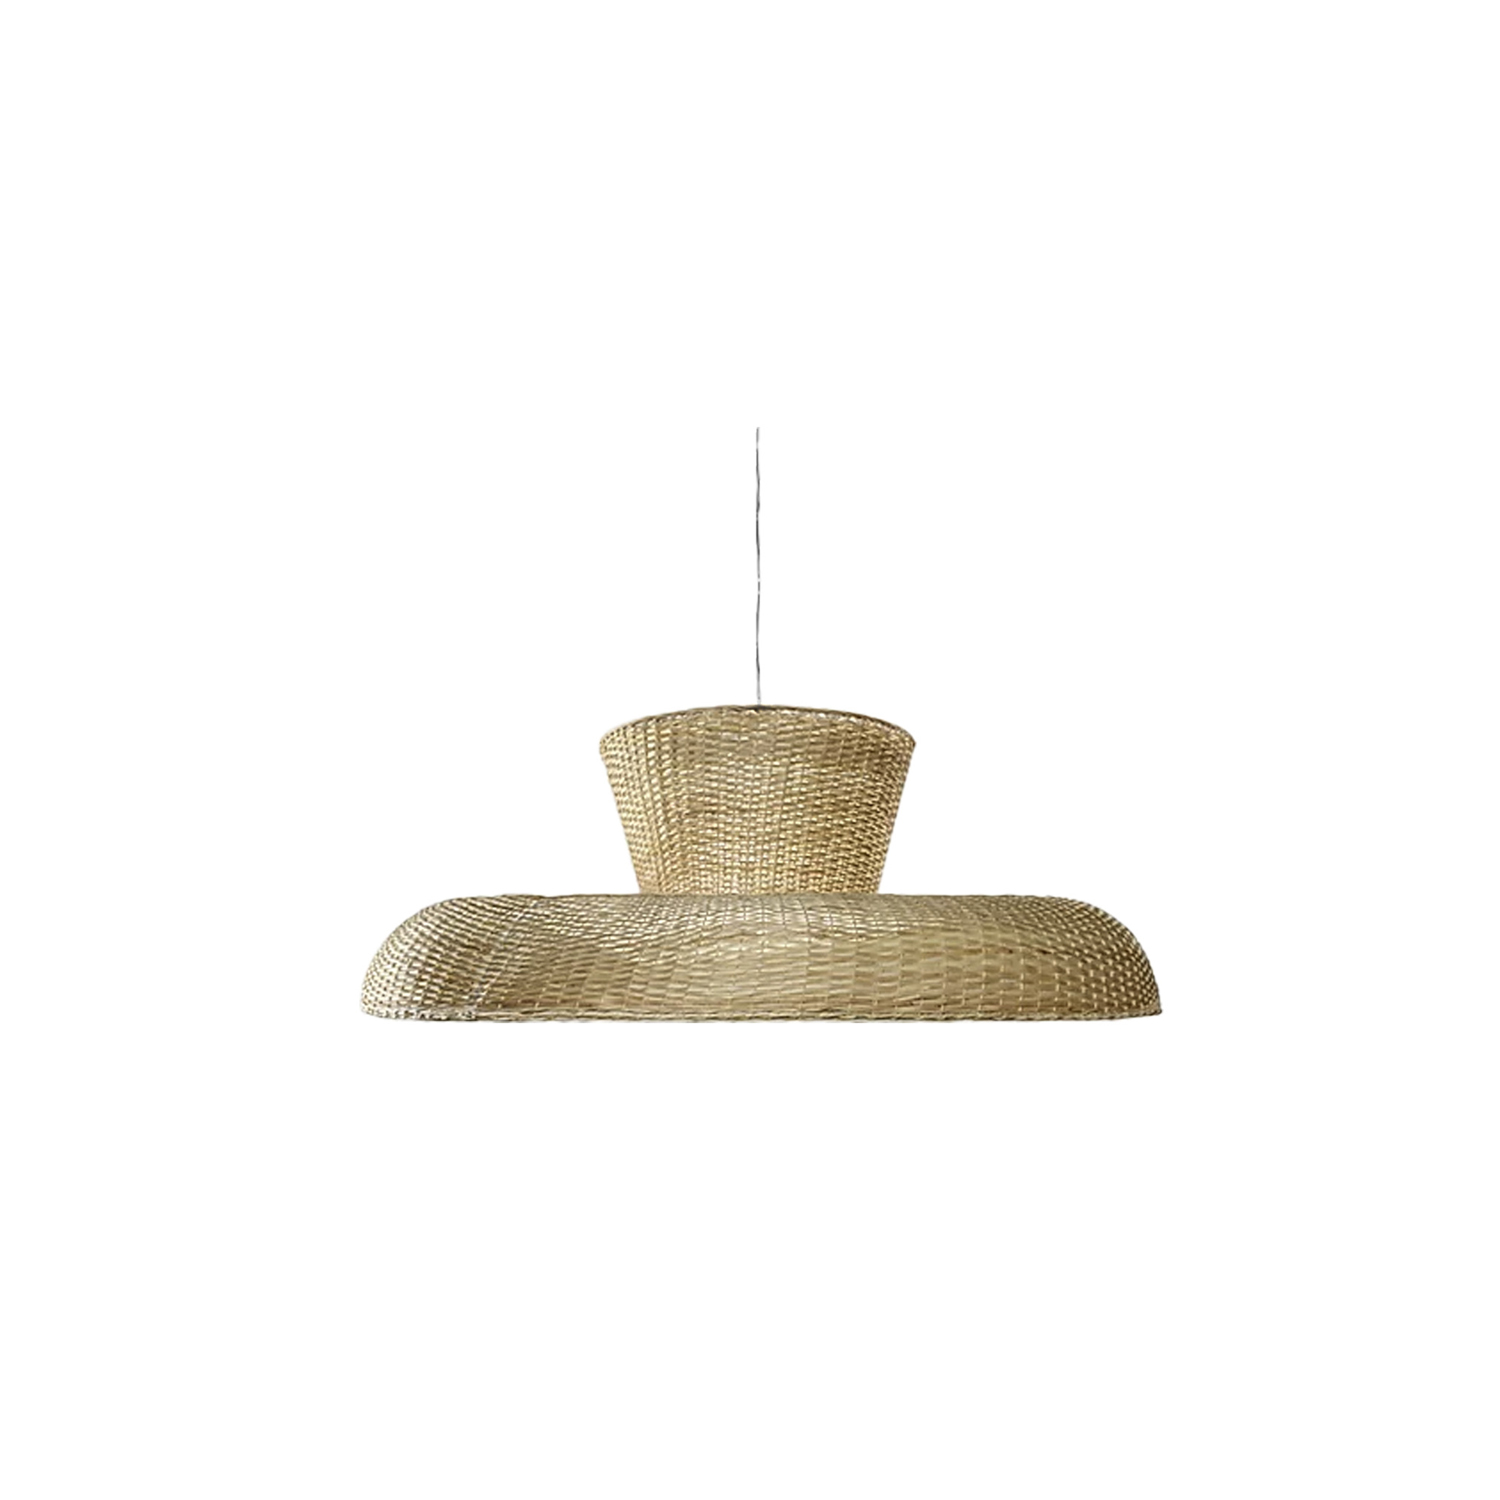 "Strikha Pendant Light - ""Strikha"" in Ukrainian means the straw roof.